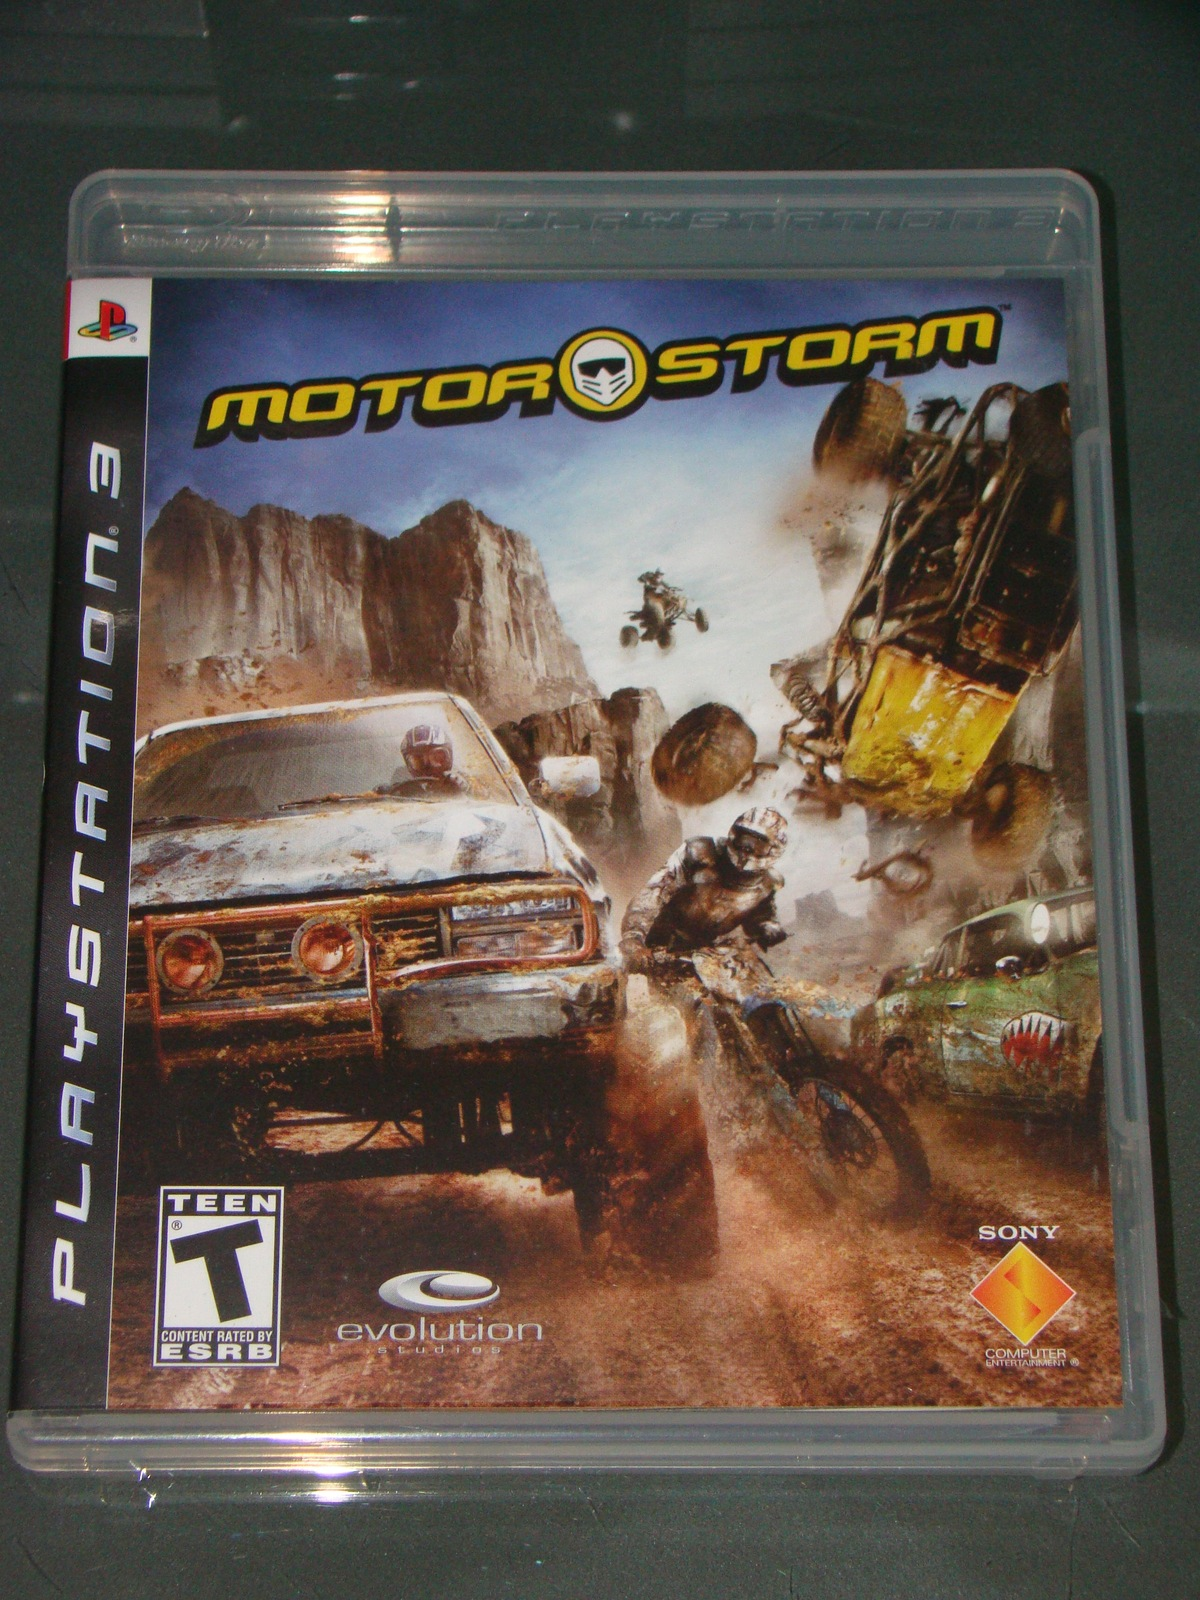 Playstation 3 - MOTOR STORM (Complete with Instructions)